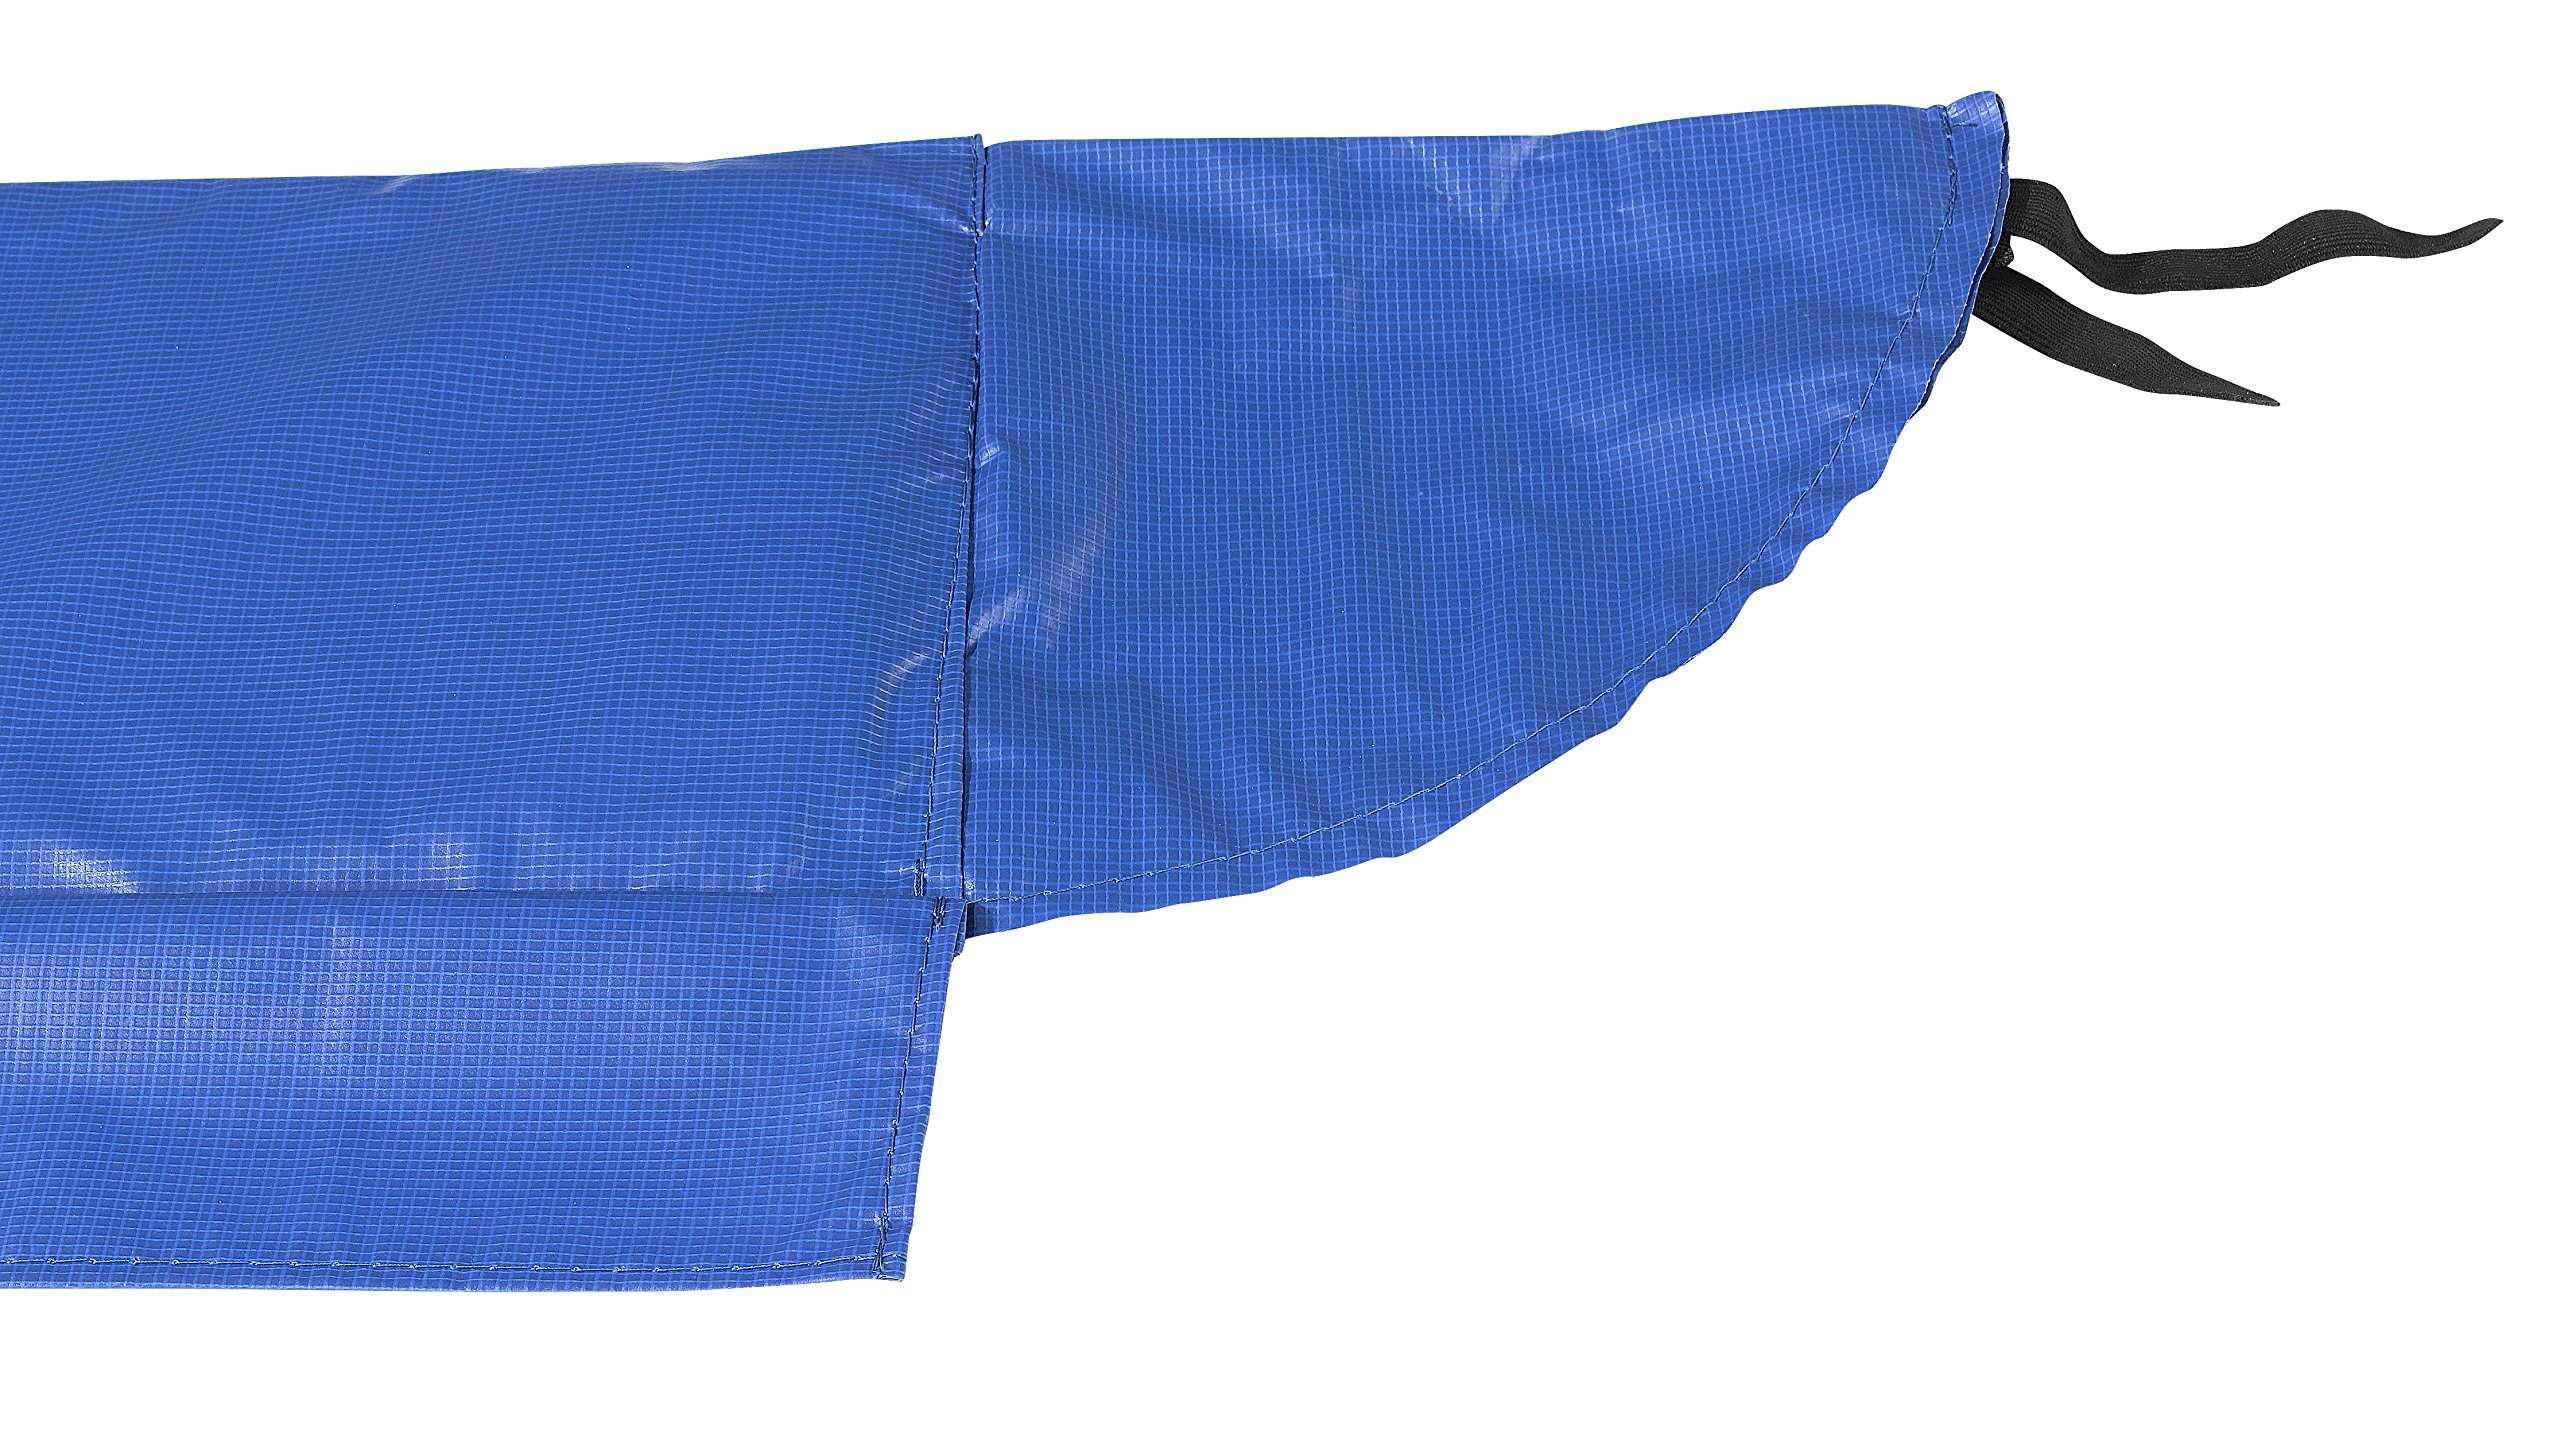 Upper Bounce Super Trampoline Replacement Safety Pad (Spring Cover) for 9' x 15' Rectangular Frames, Blue by Upper Bounce (Image #3)